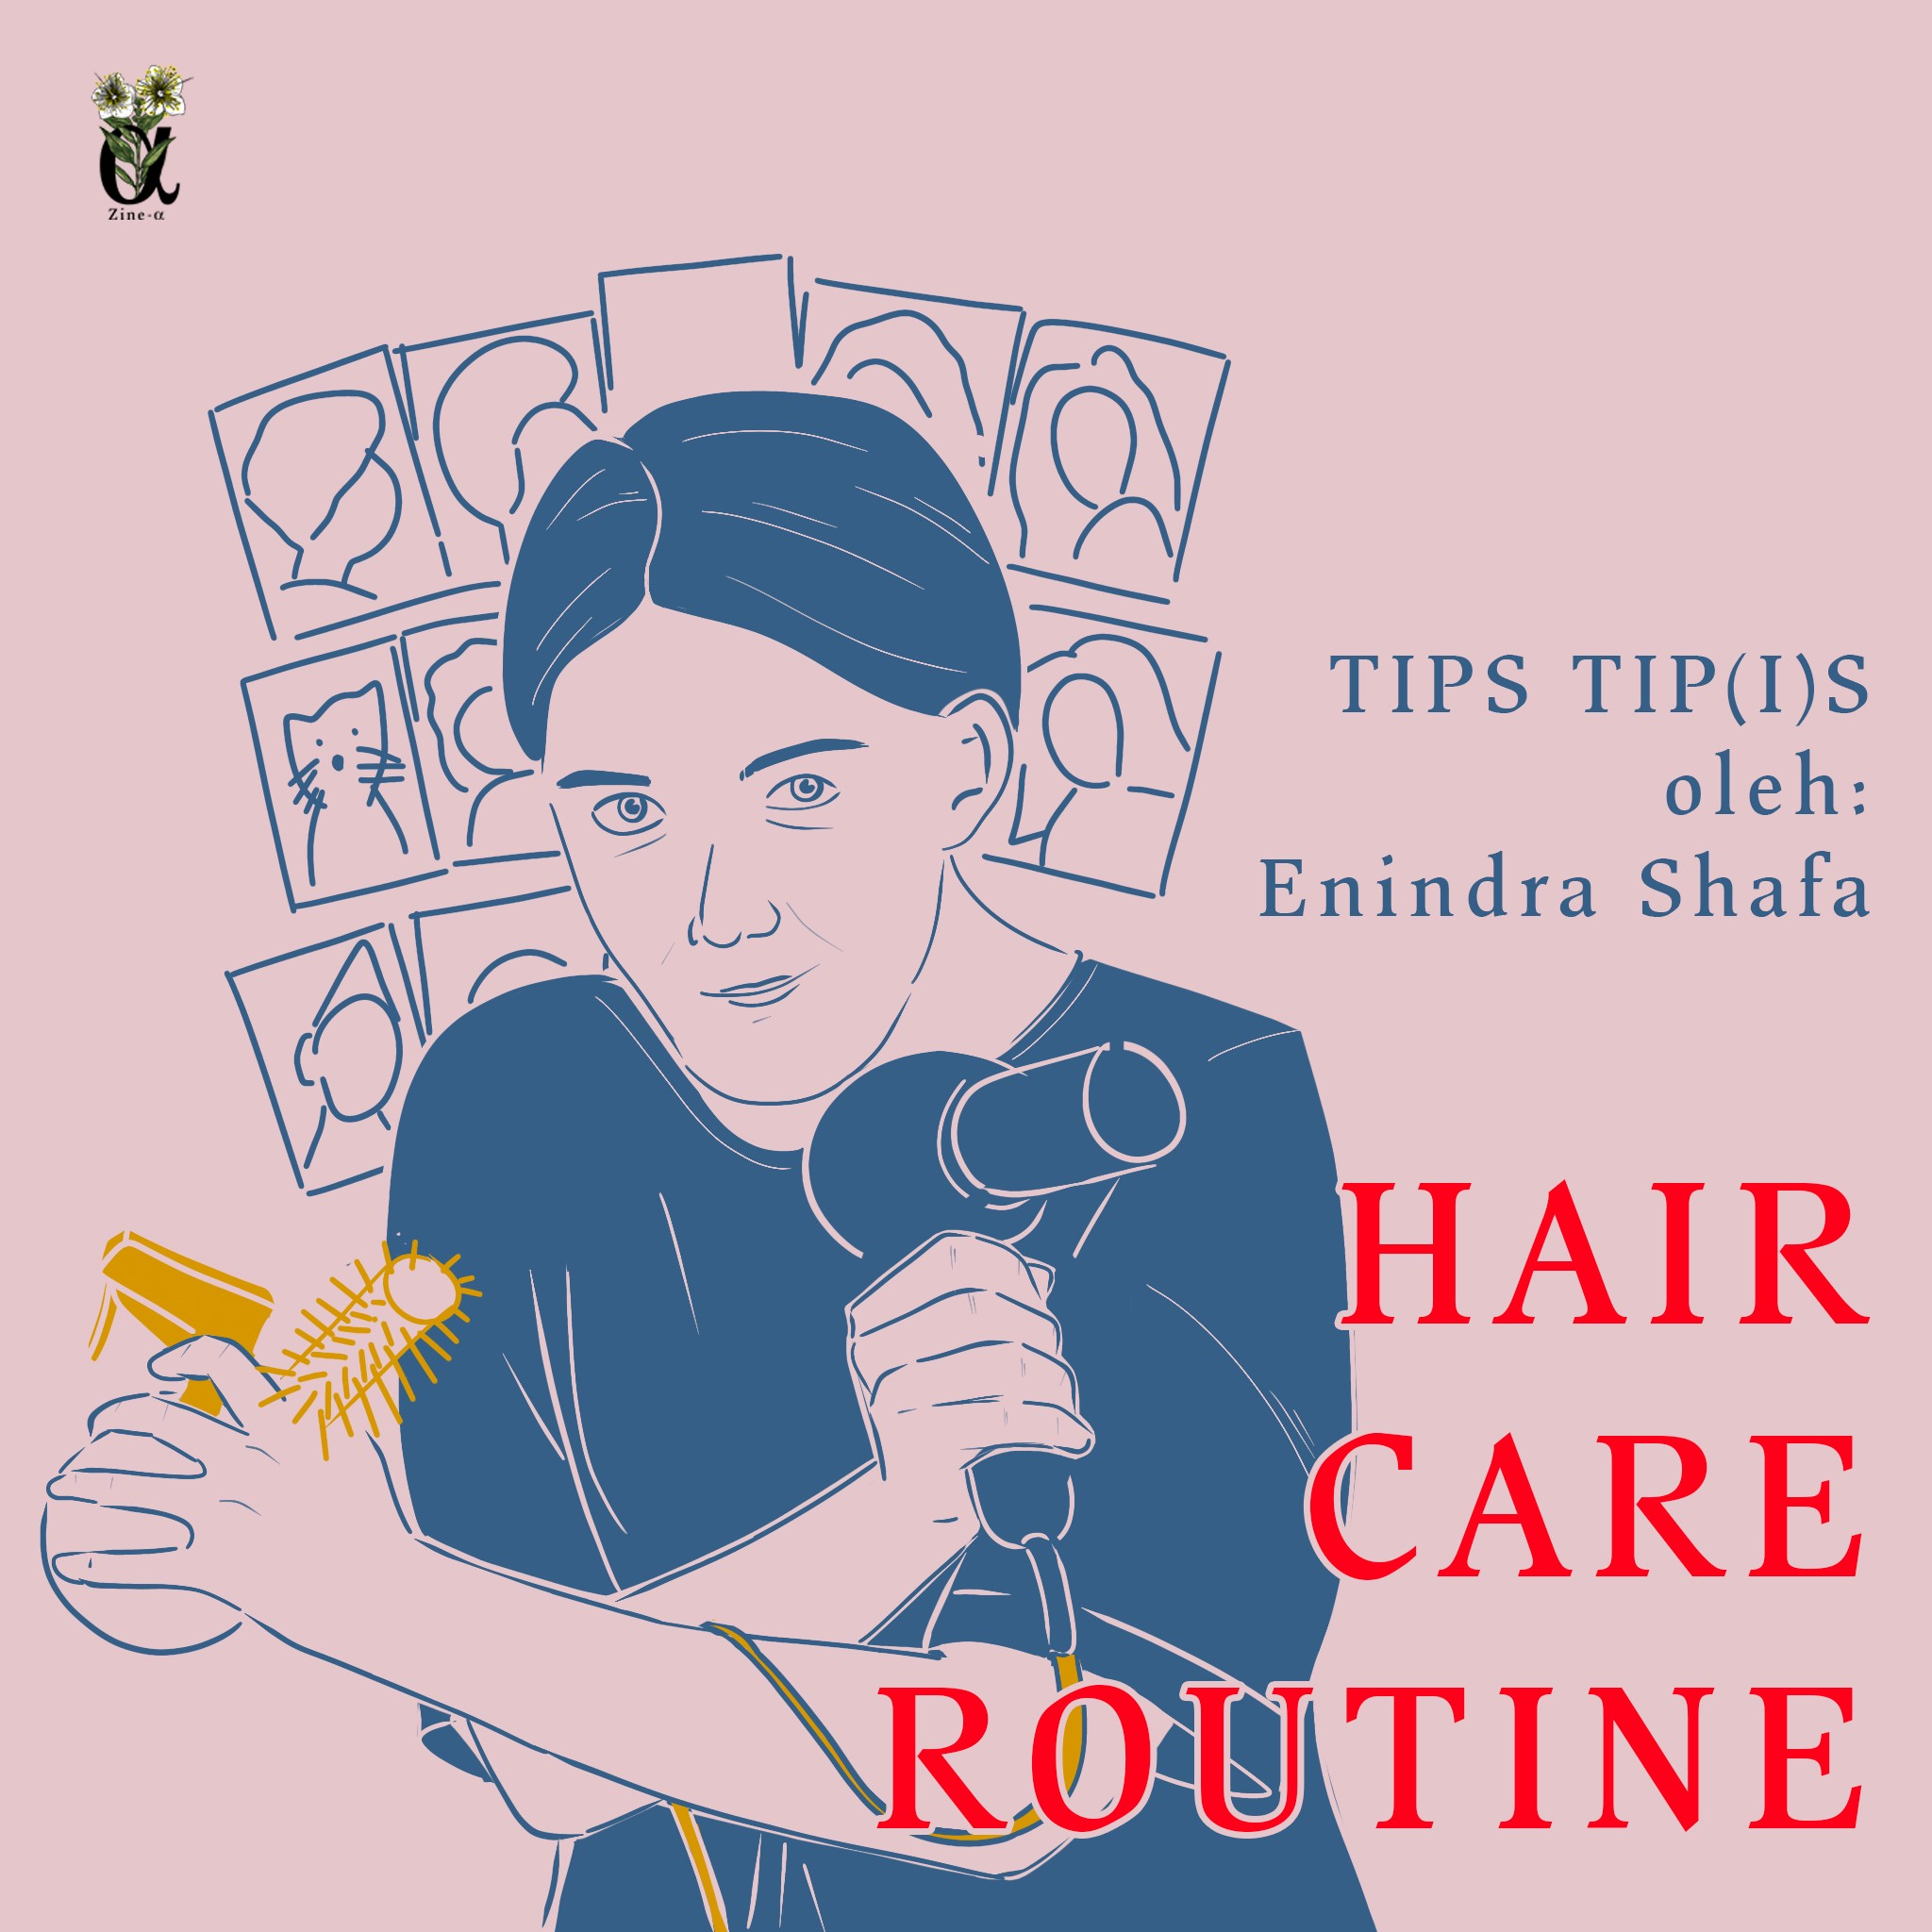 Hair Care Routine Penangkal Rambut Rontok By The Zine A Medium